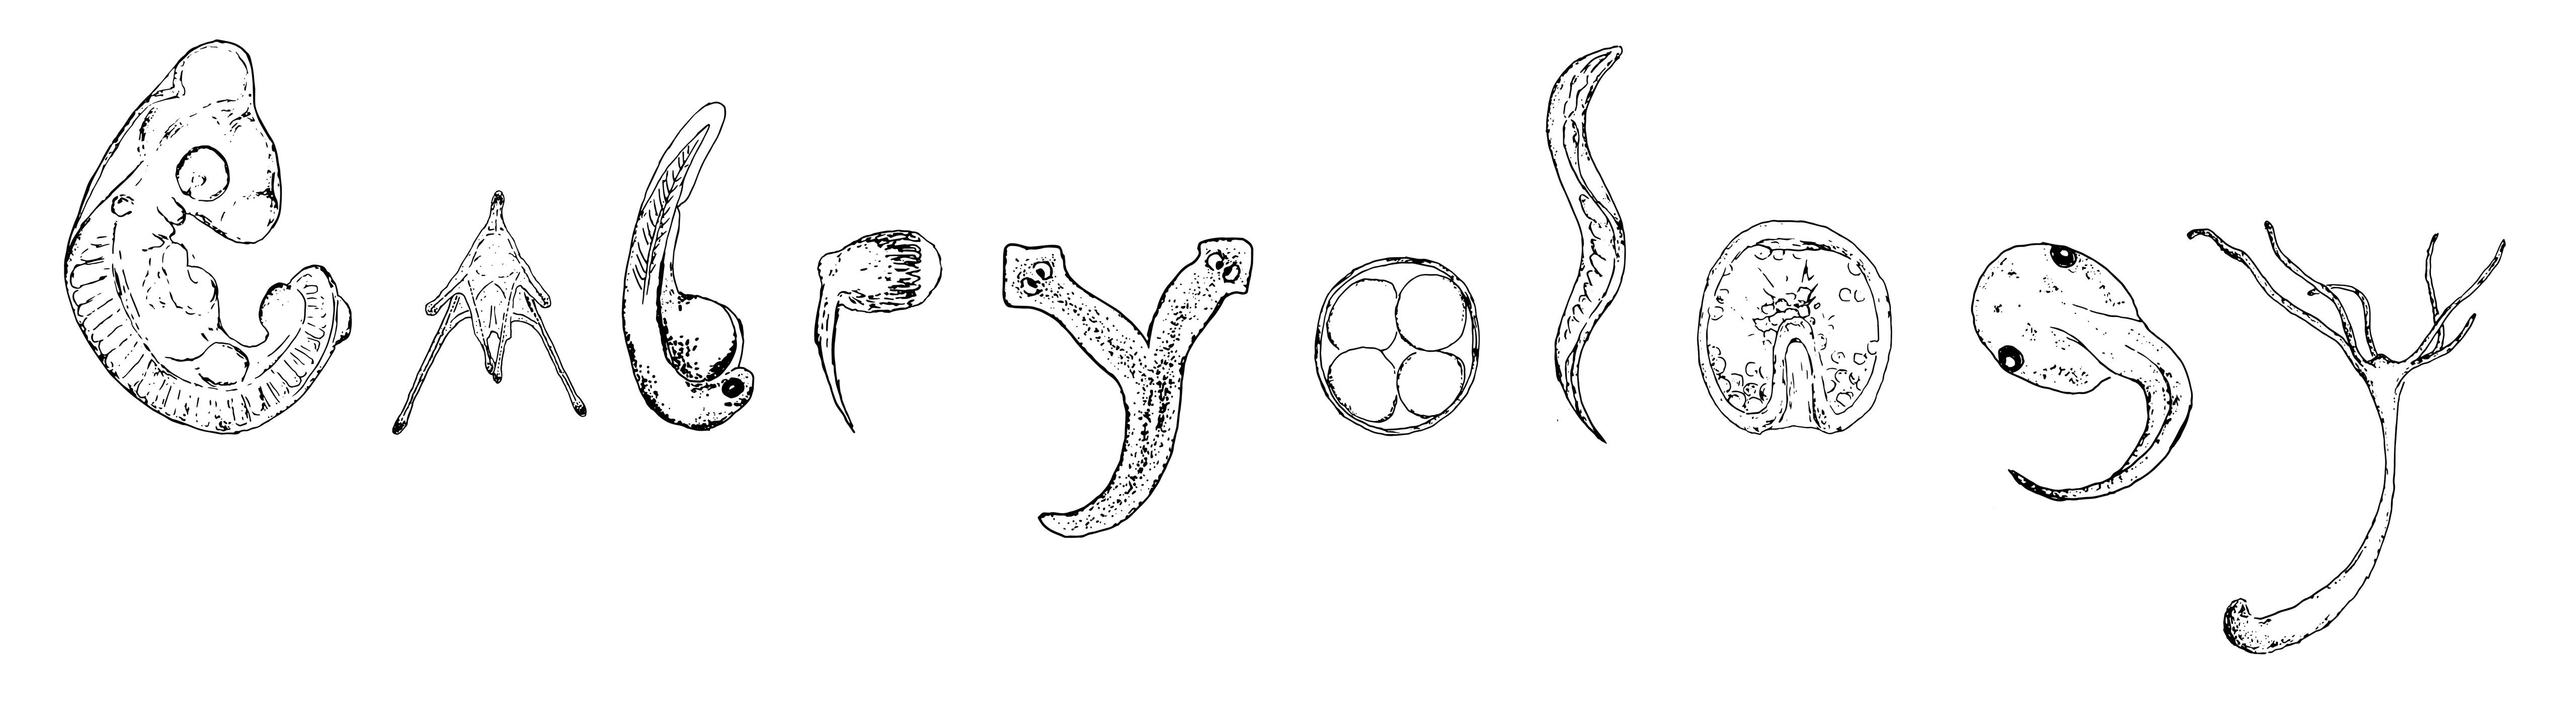 An illustration of some of the organisms we worked on during the course, arranged to spell EMBRYOLOGY.